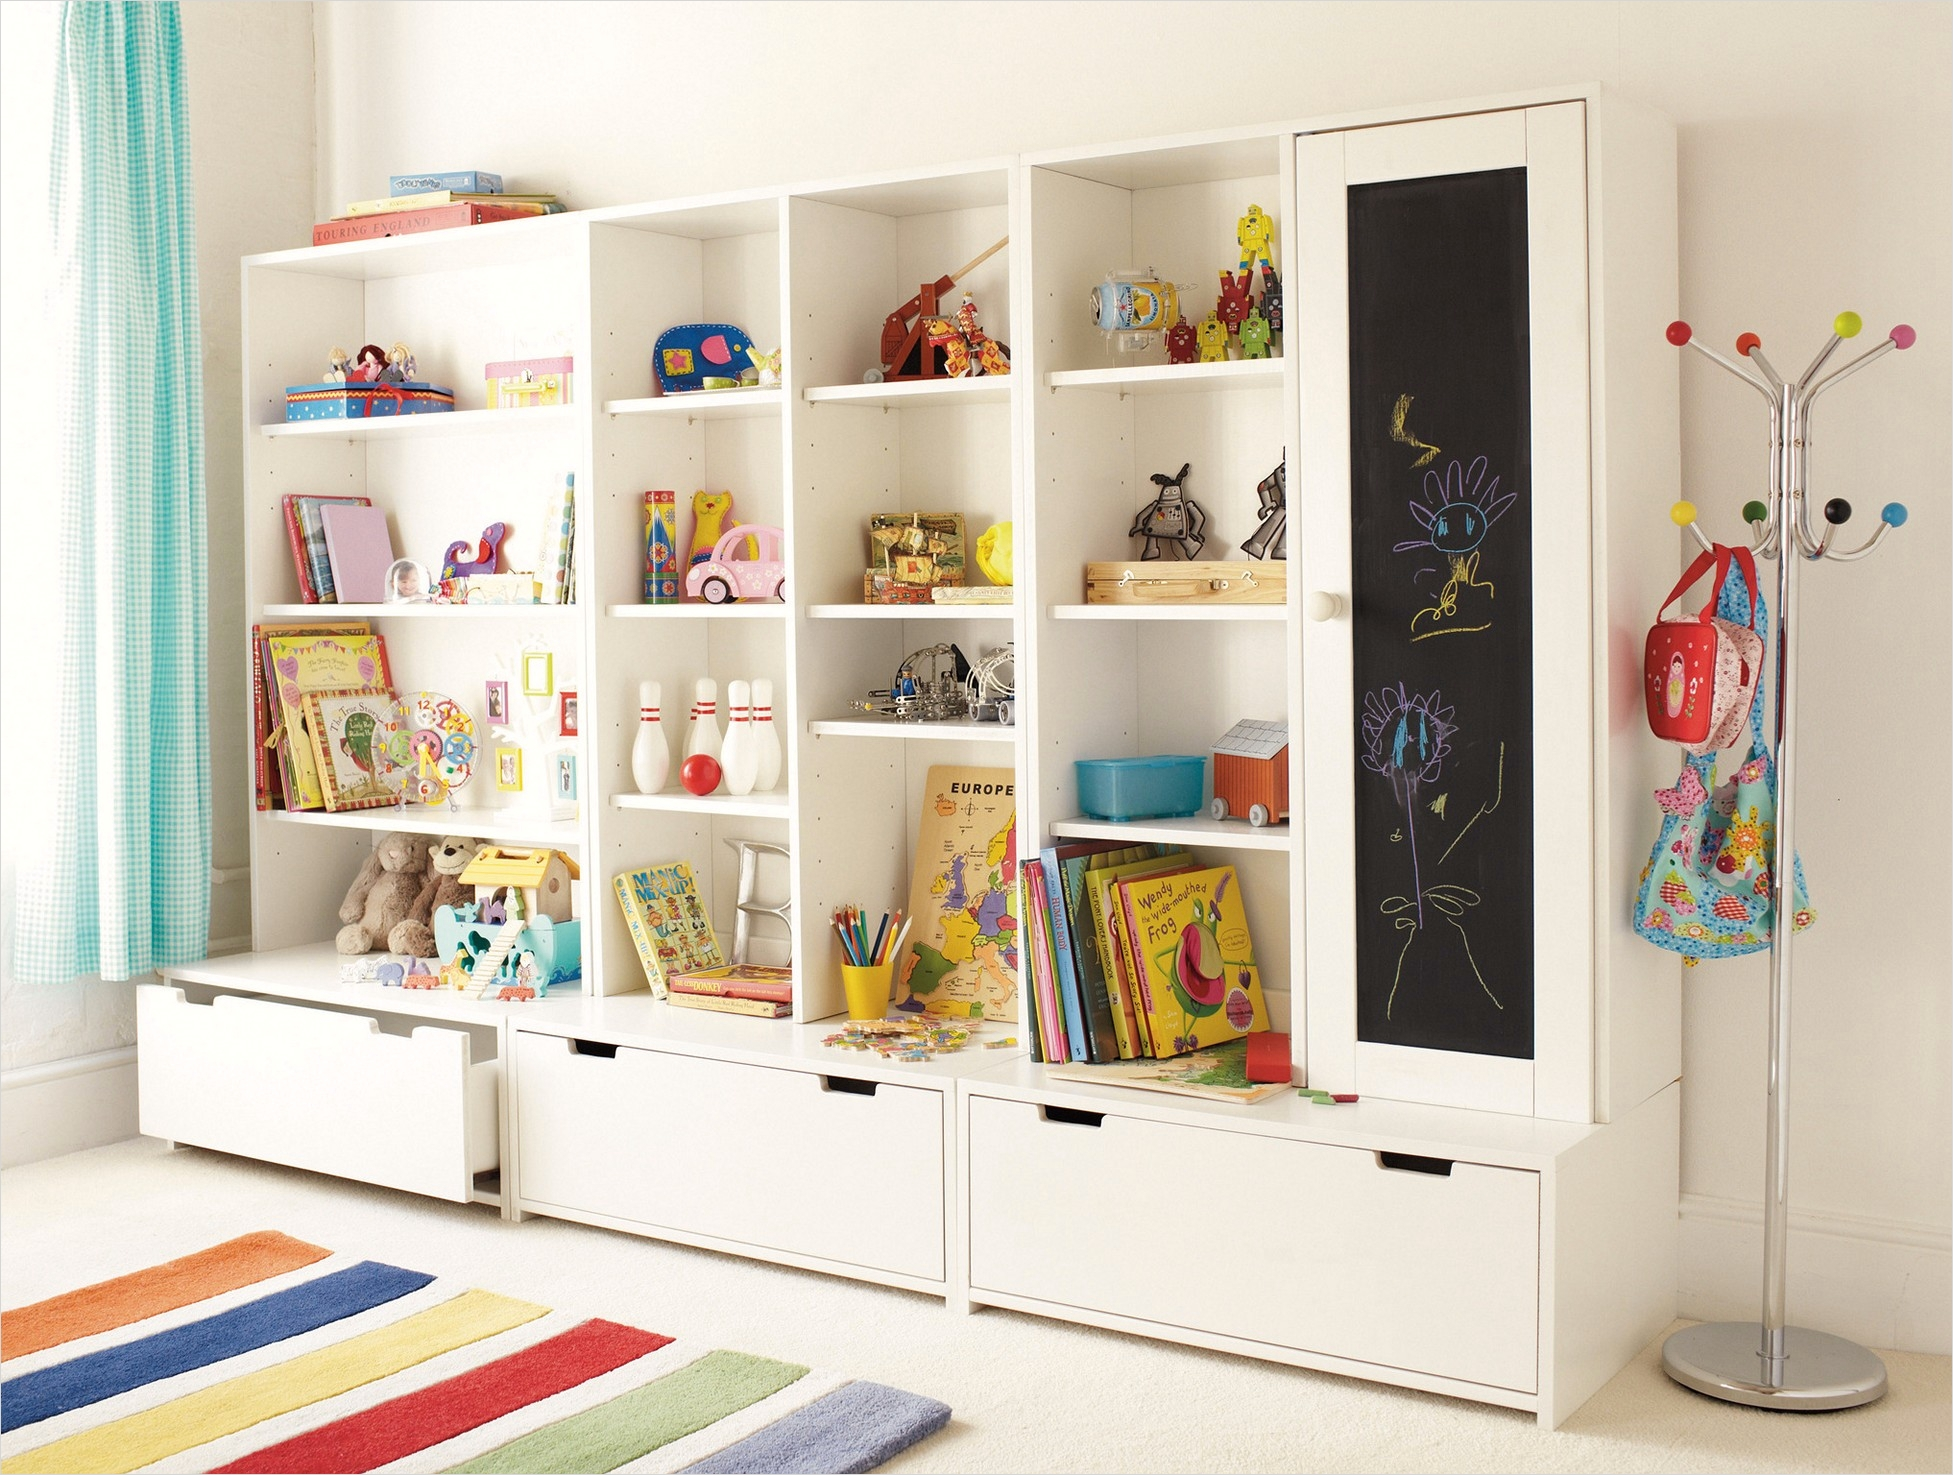 42 Creative Small Room Storage Ideas 34 Book Storage Ideas Cool and Creative to Apply at Home 2